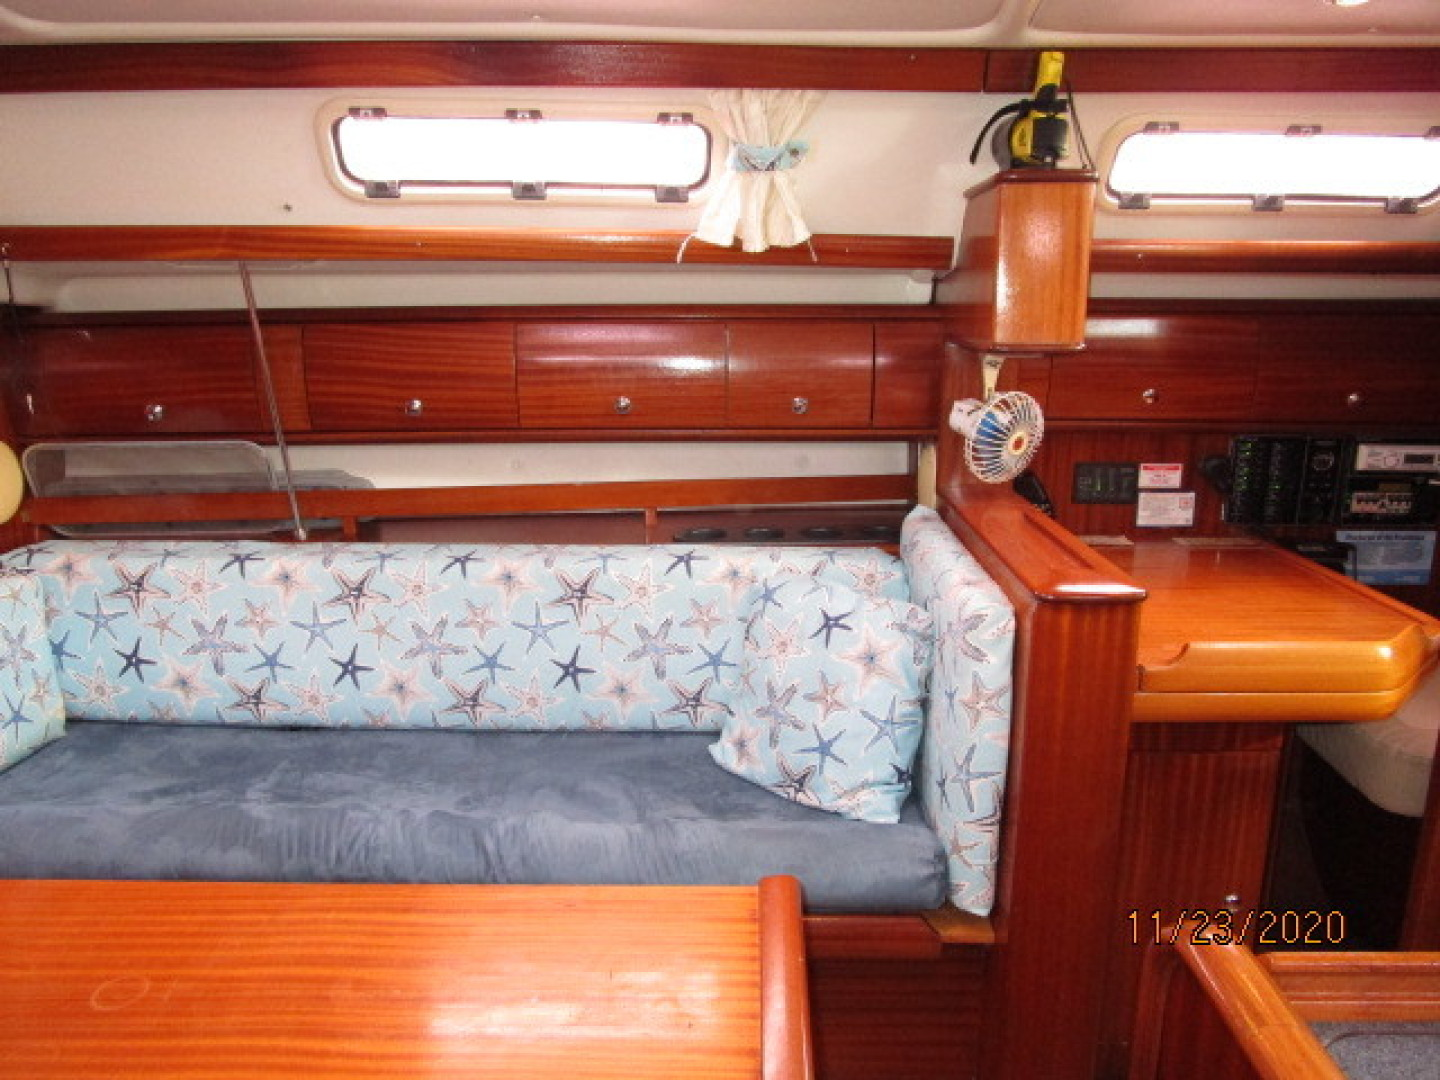 Bavaria-36 3 stateroom 2004-Aequanimity Southport-Connecticut-United States-1566132 | Thumbnail